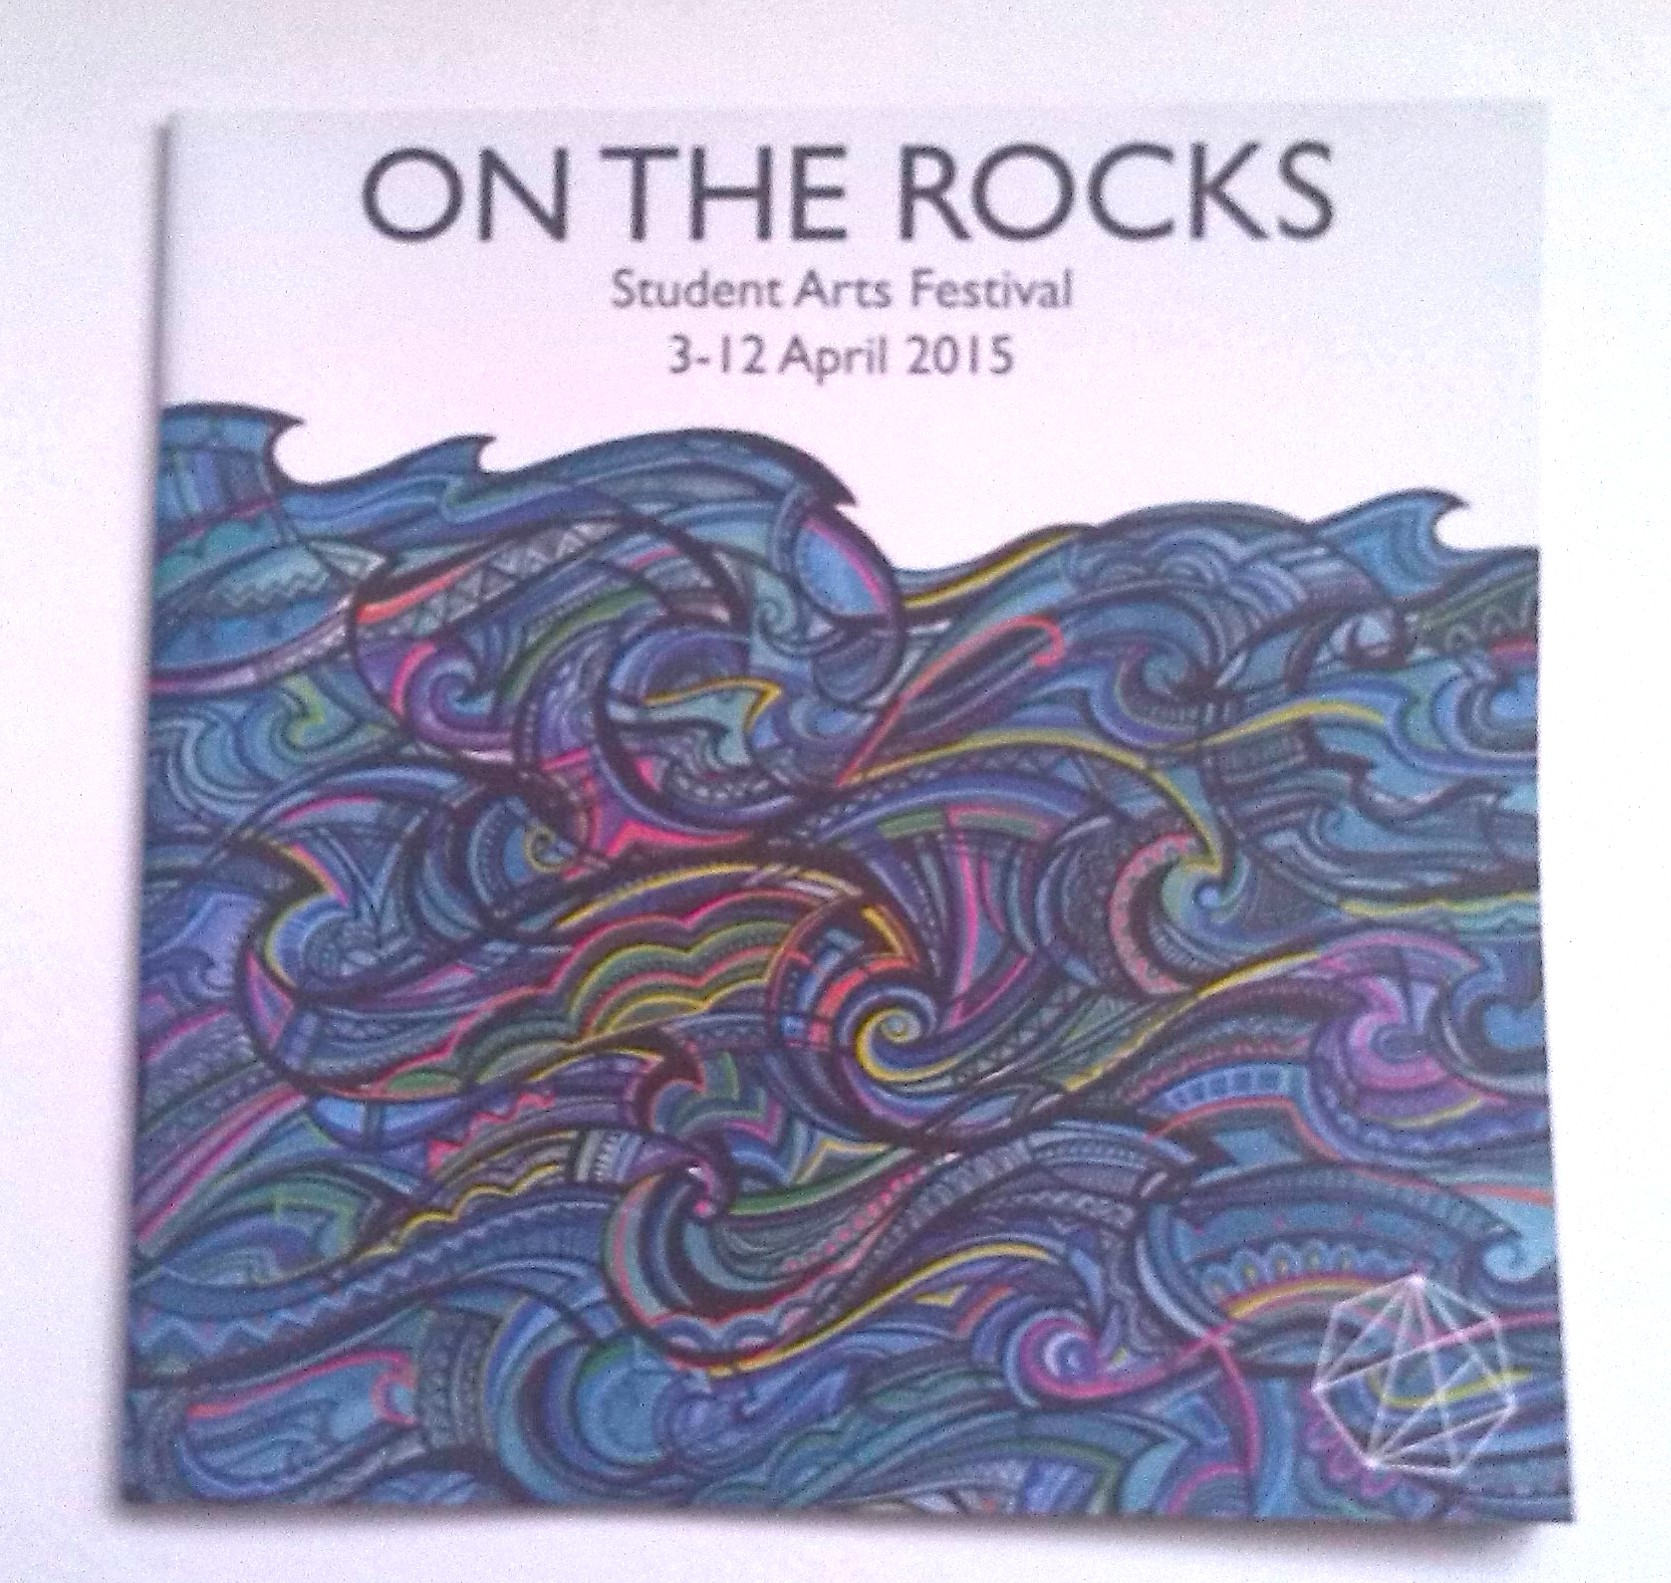 On The Rocks programme